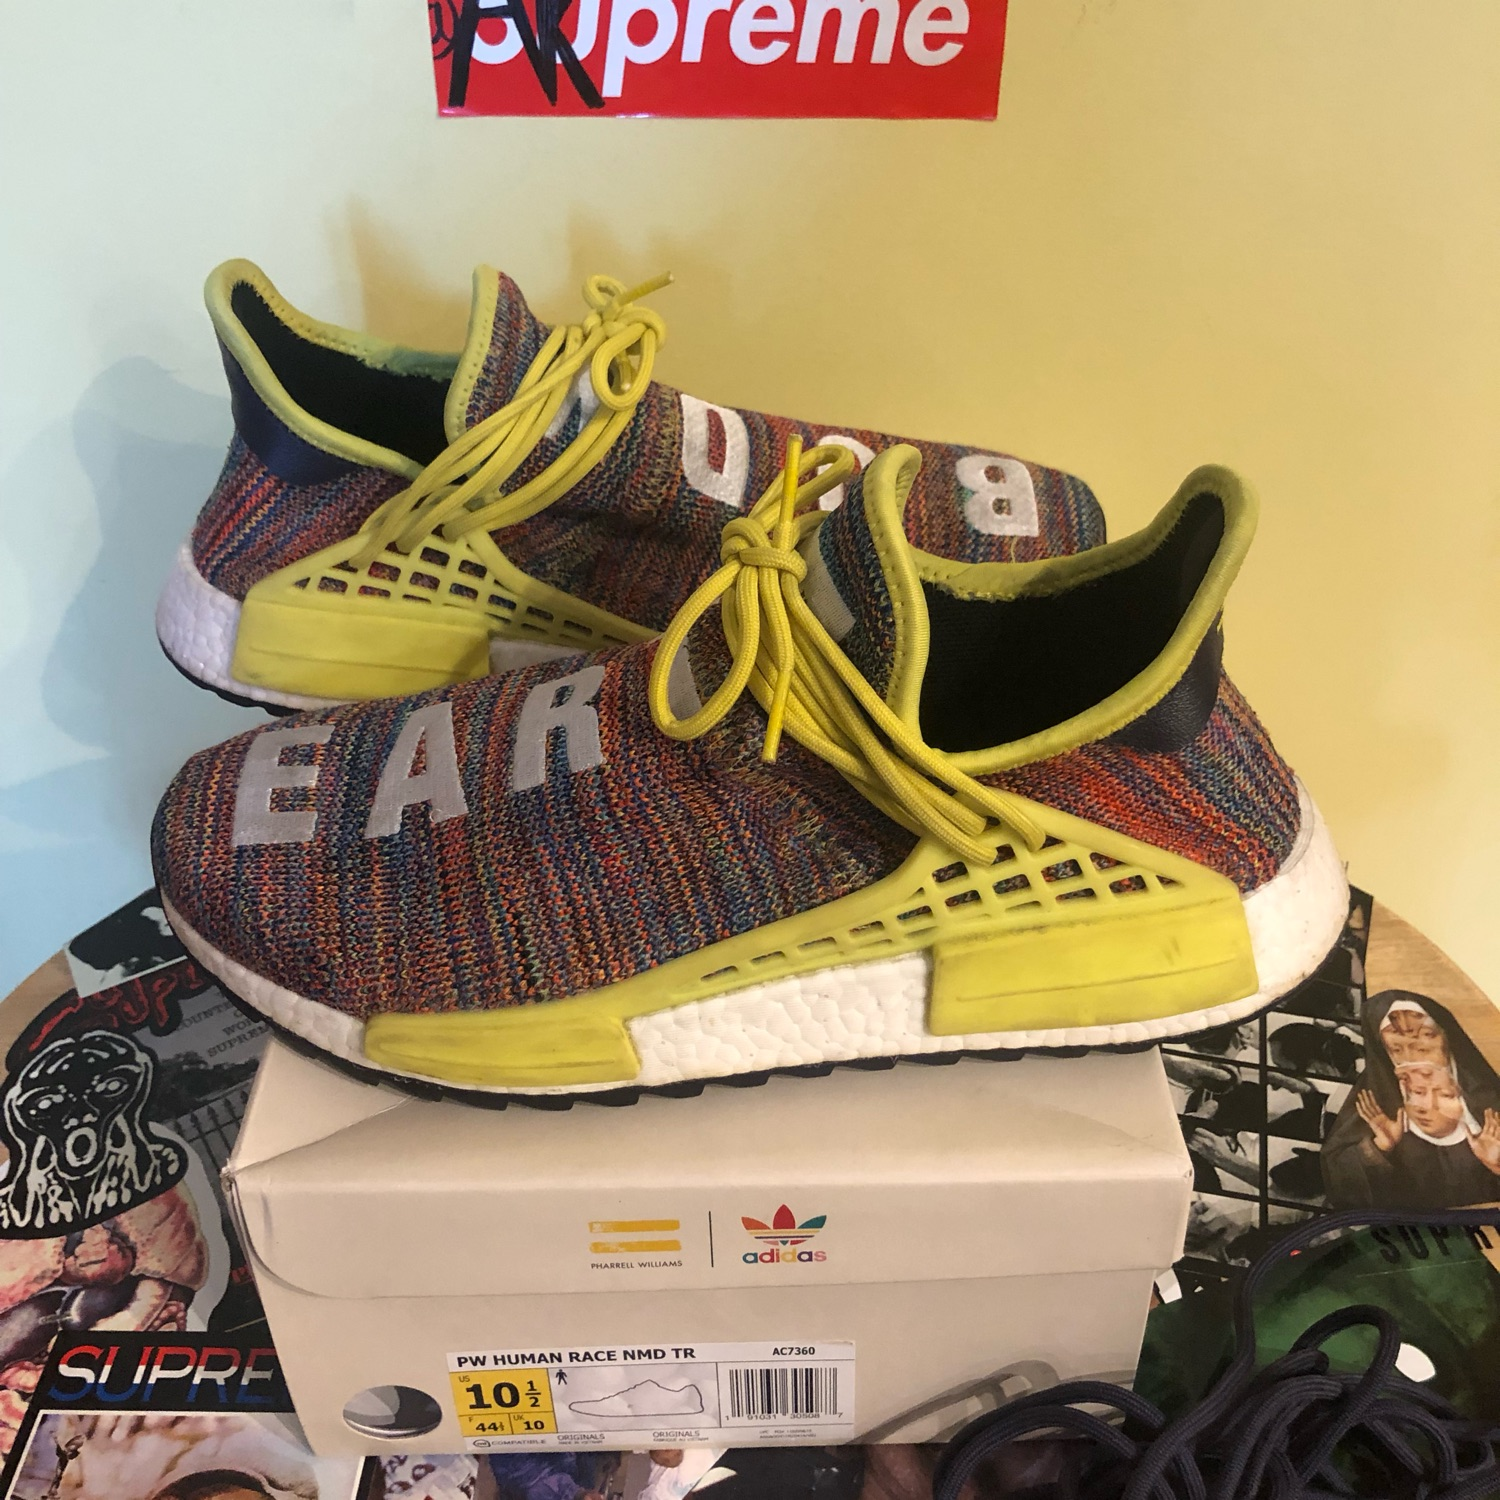 timeless design 55637 78eac Pharrell William Human Race Multicolor Size 10.5